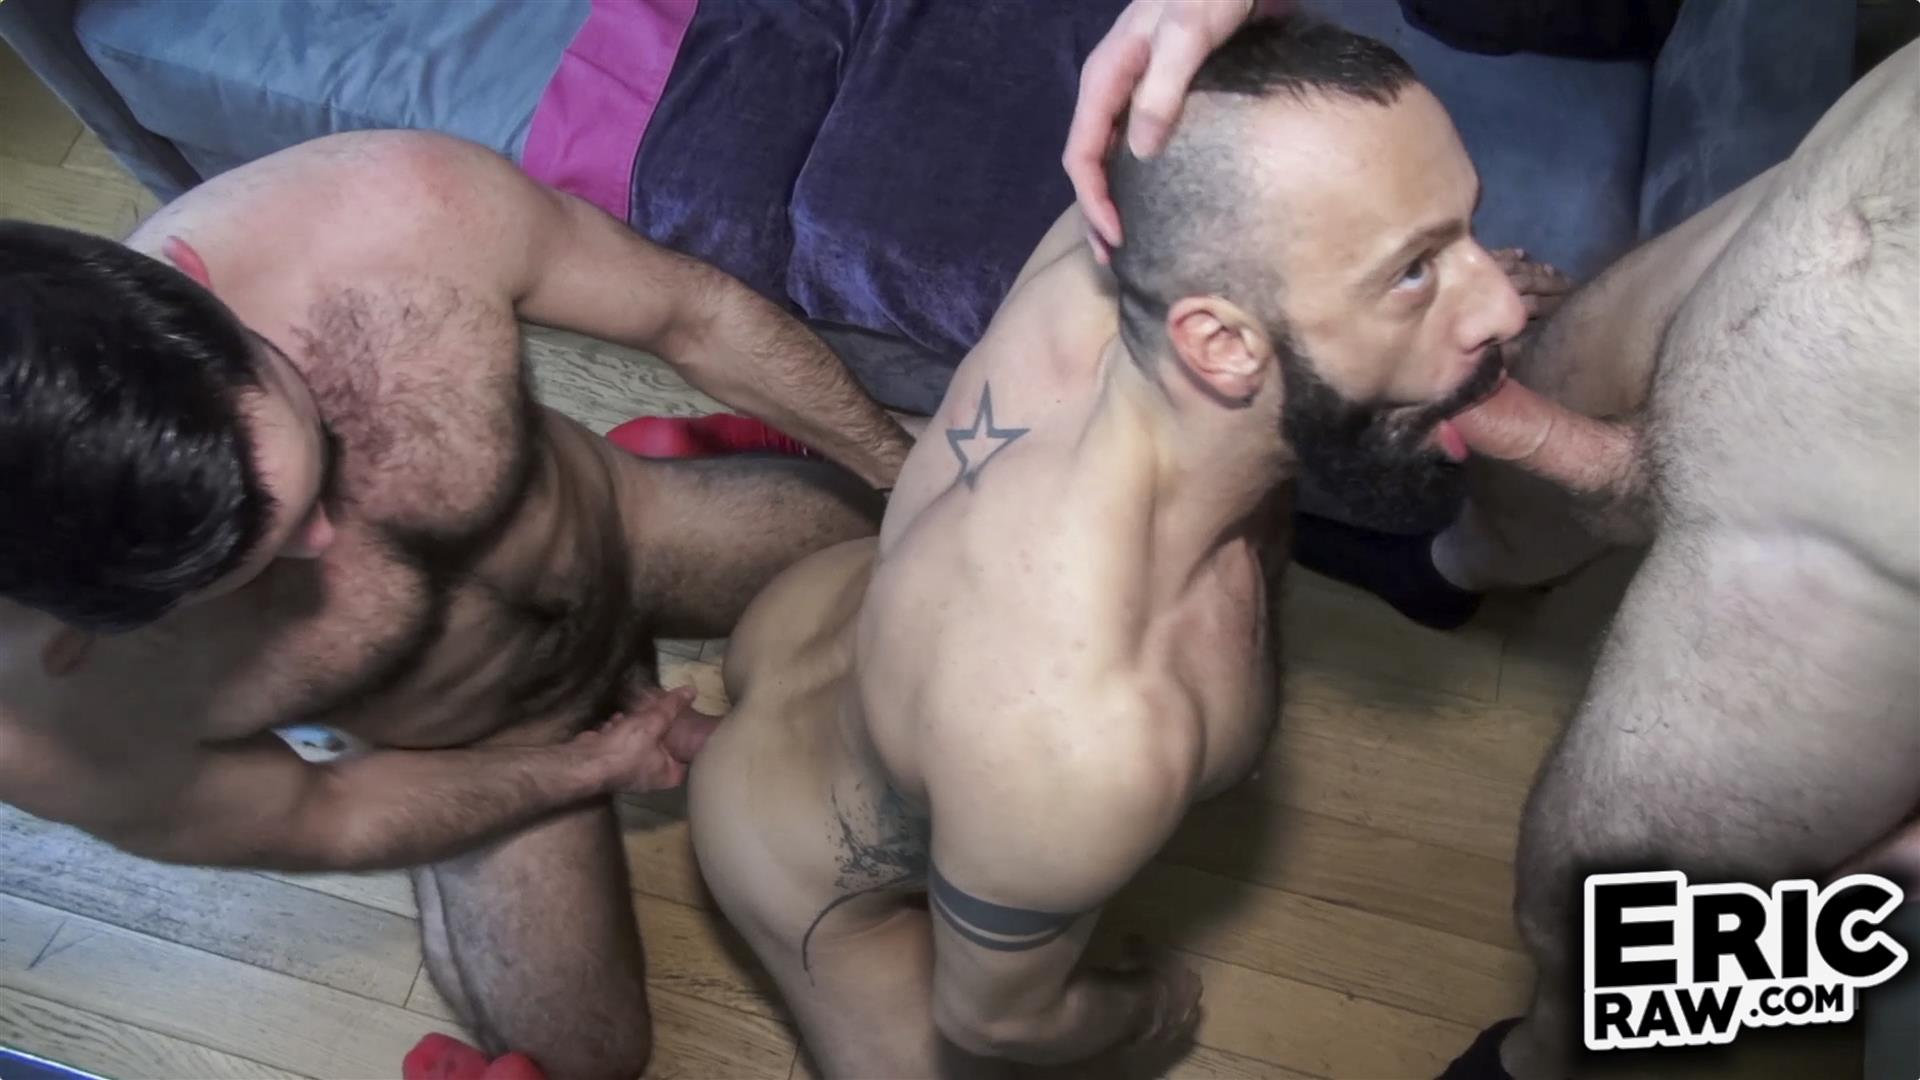 Eric-Raw-Bareback-Threesome-Hairy-Muscle-Hunks-Amateur-06 Bareback Fuck Date With Three Hairy Muscular Jocks